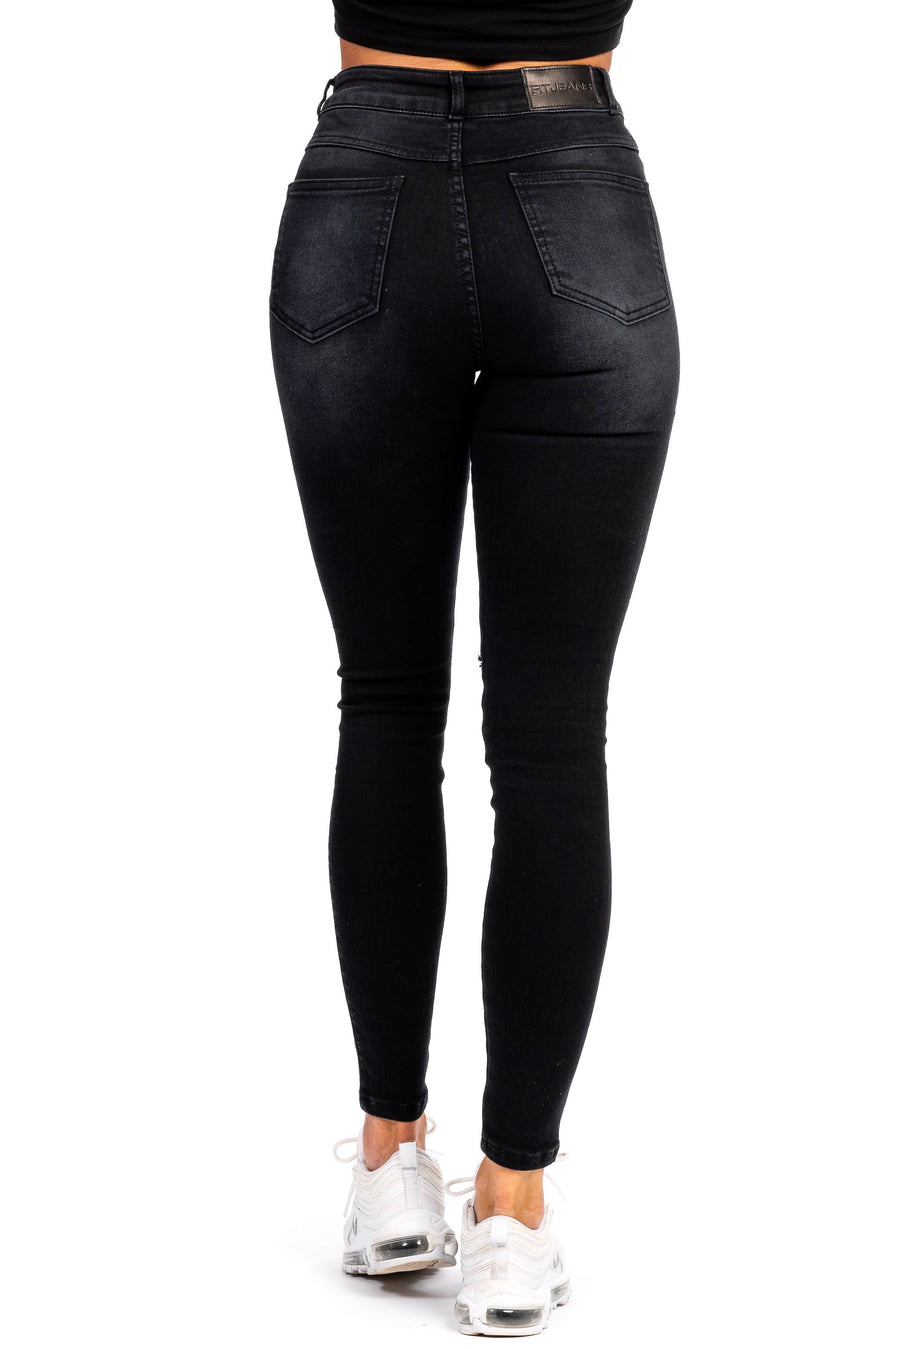 Womens Ripped Traditional High Waisted Fitjeans - Shaded Black